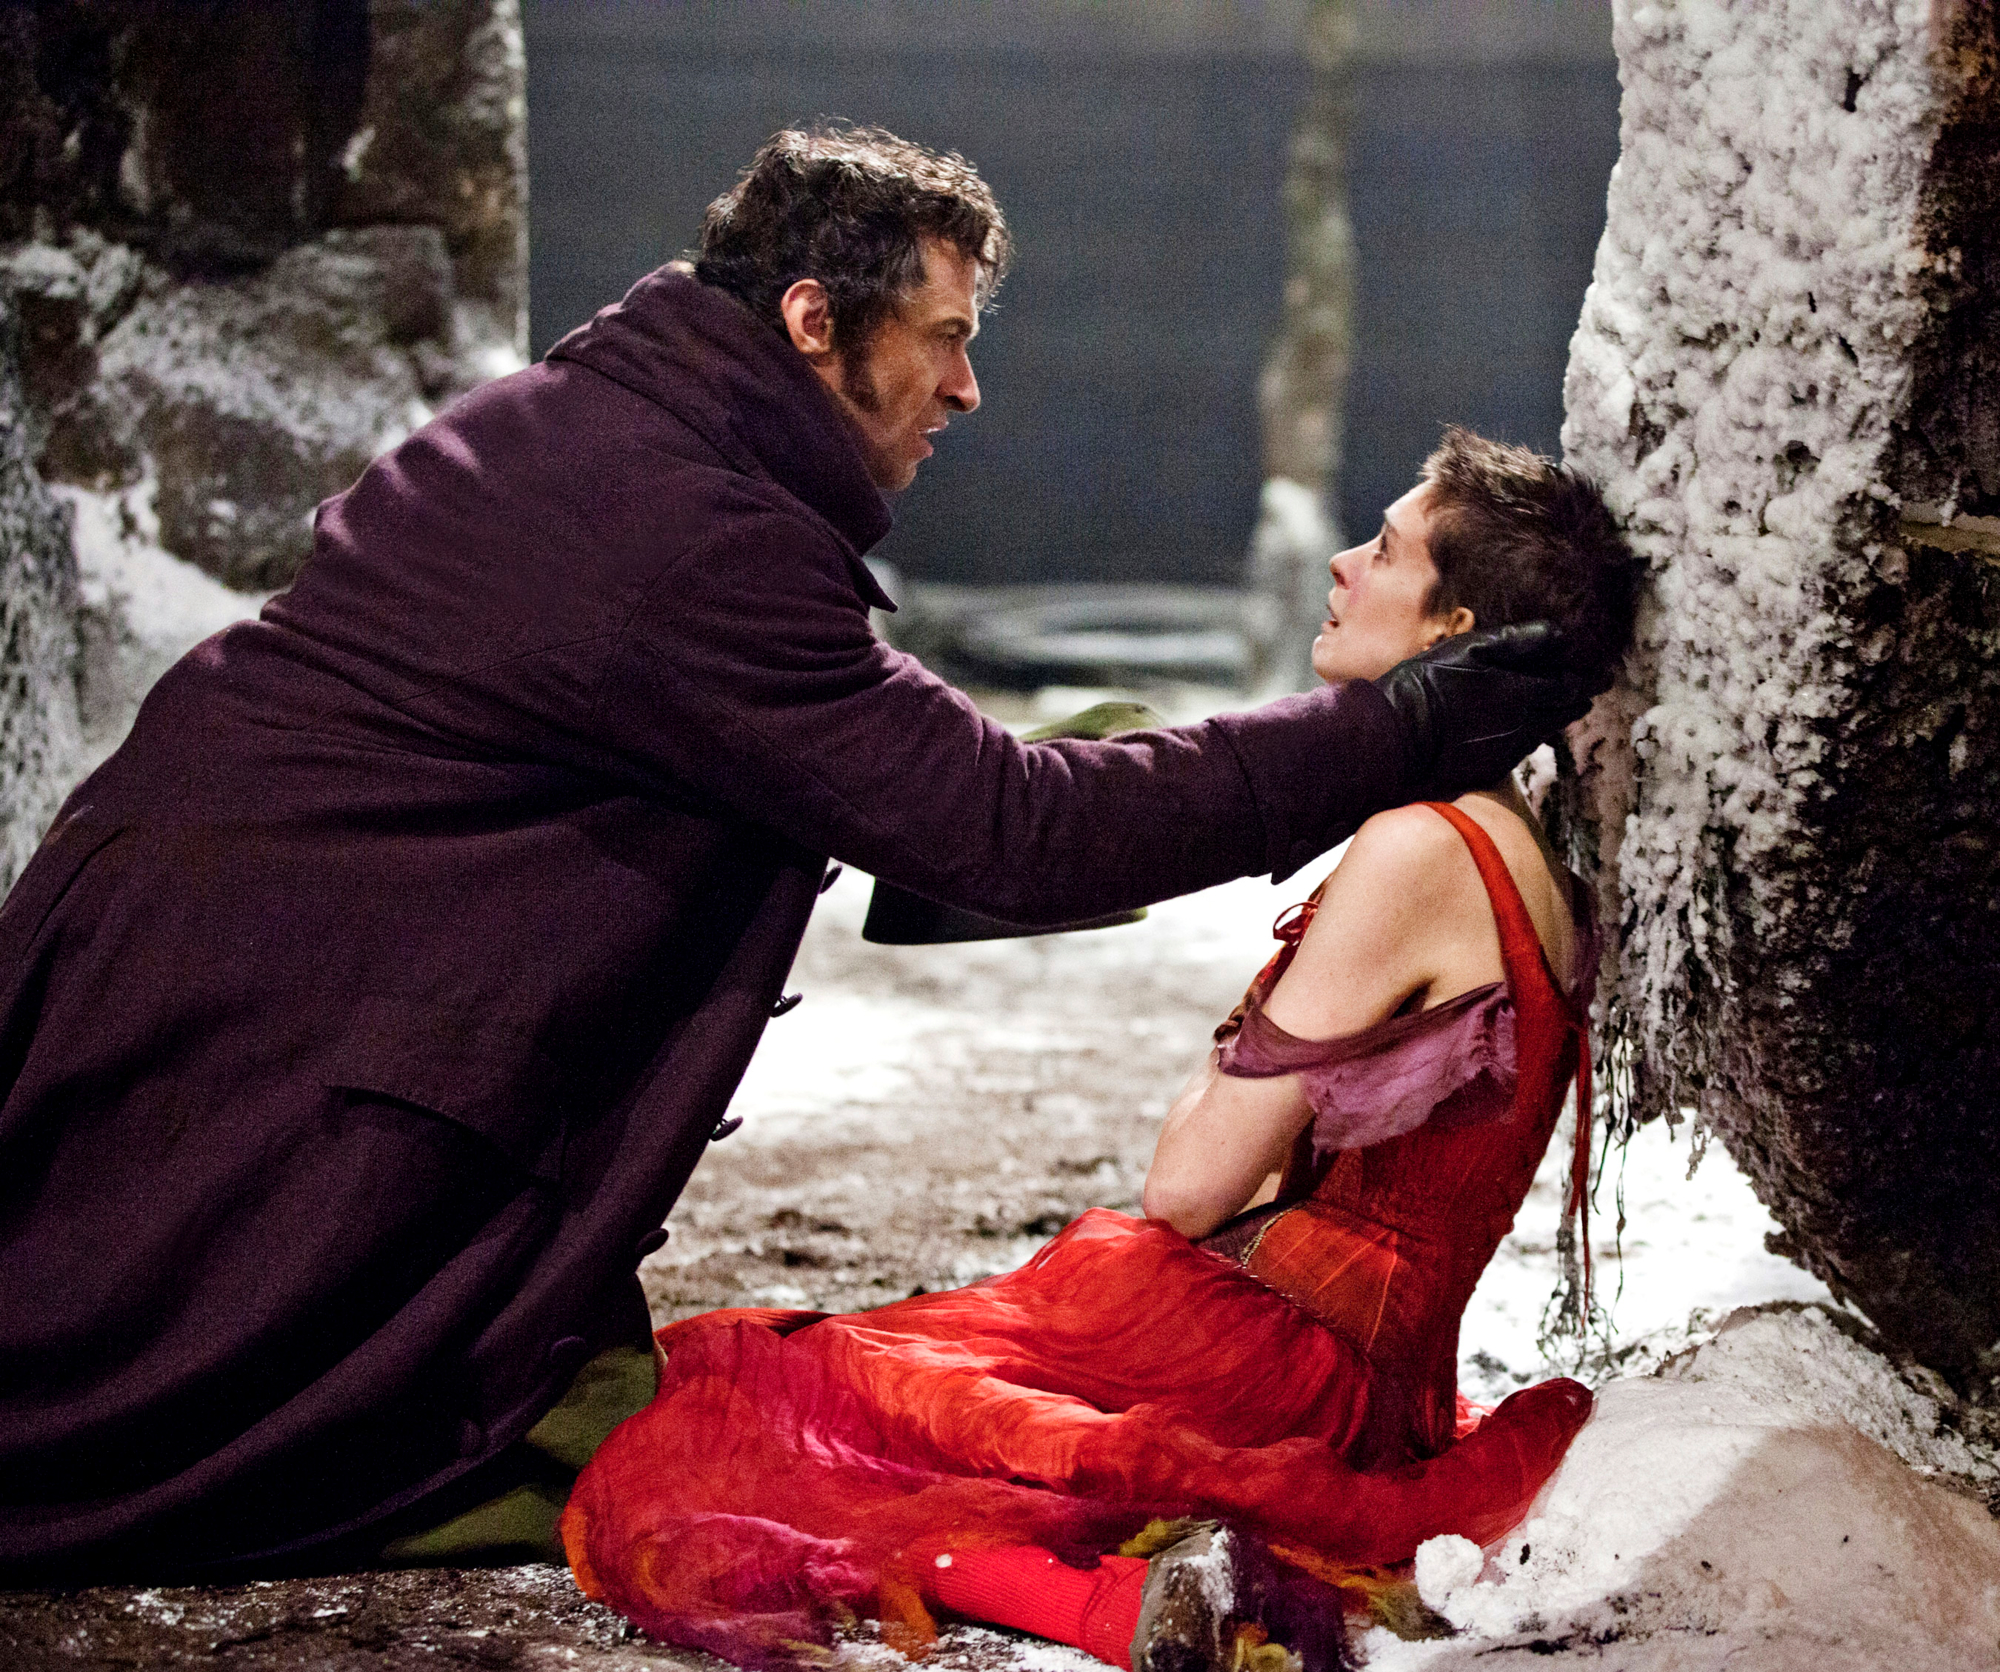 LES MISERABLES, from left: Hugh Jackman, Anne Hathaway, 2012. ©Universal Pictures/Courtesy Everett C